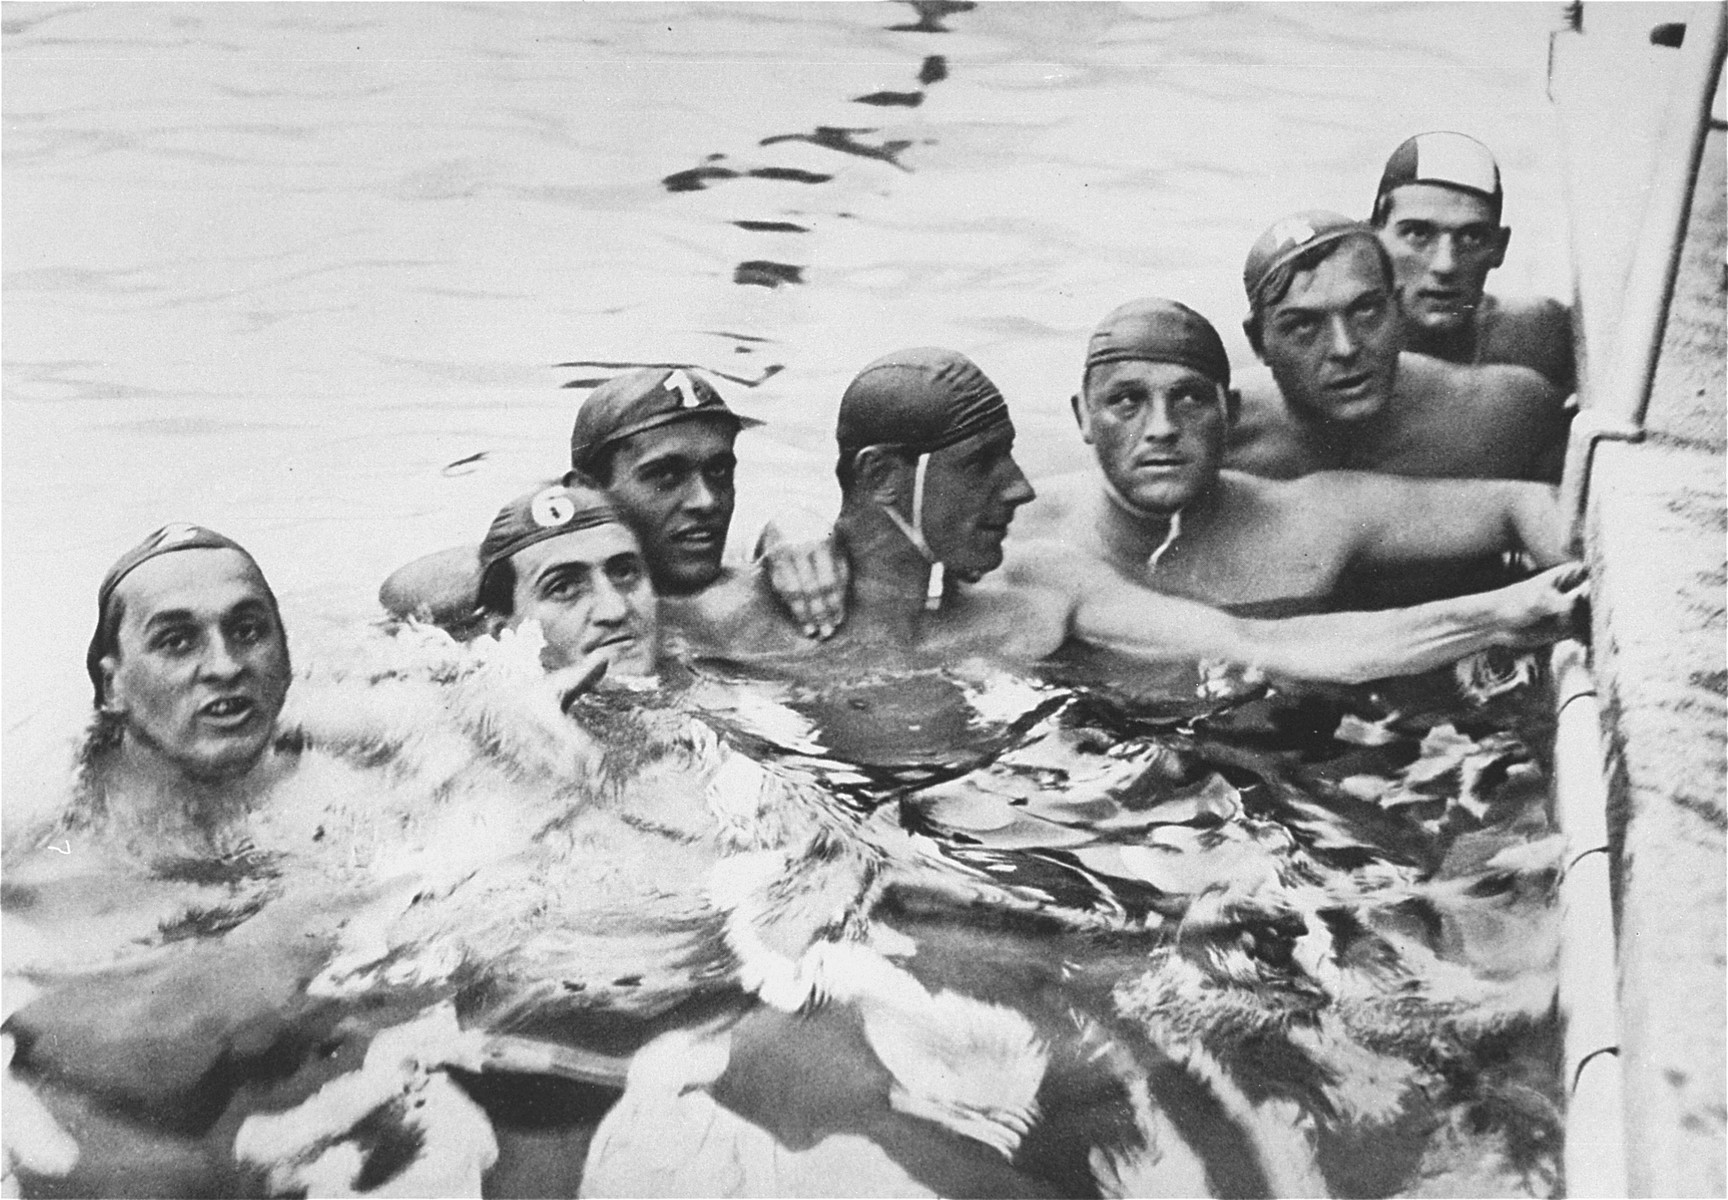 The Hungarian water polo team in the pool at the 11th Summer Olympic Games.